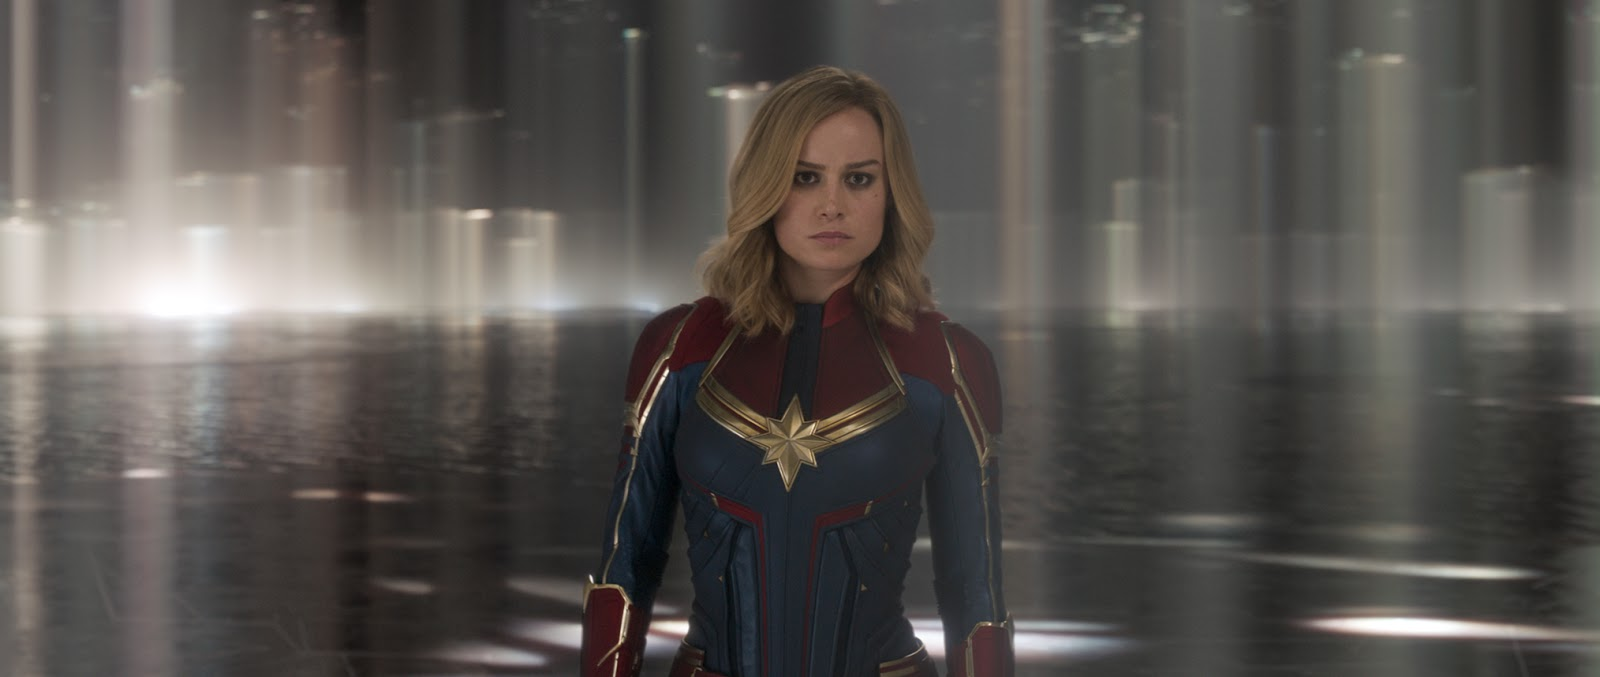 captain marvel full movie download in hindi (hd) 2019